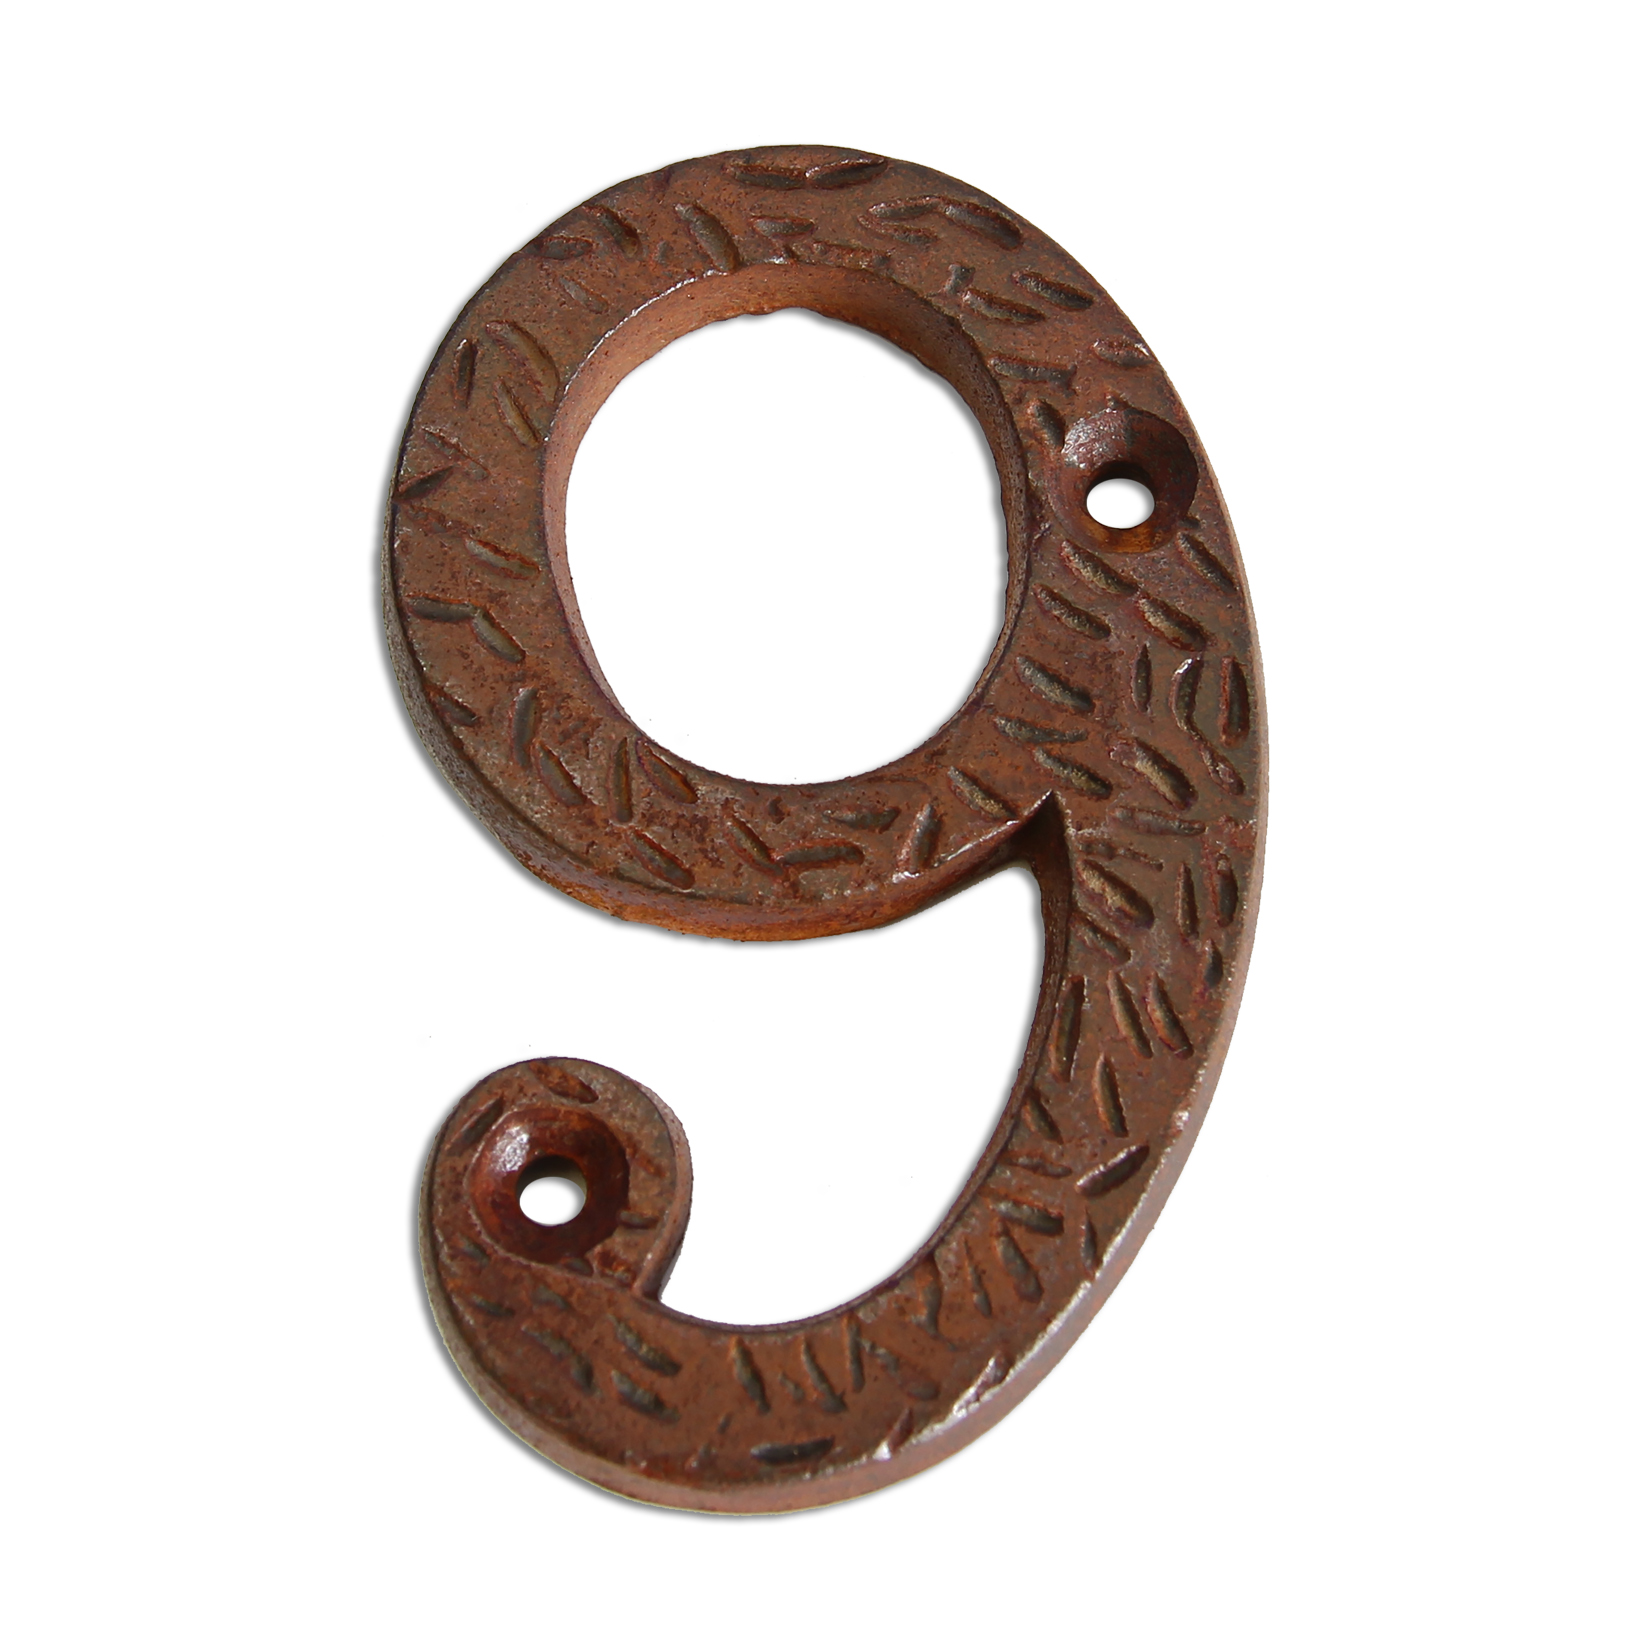 3-inch iron metal house number in rustic country finish - metal number 9